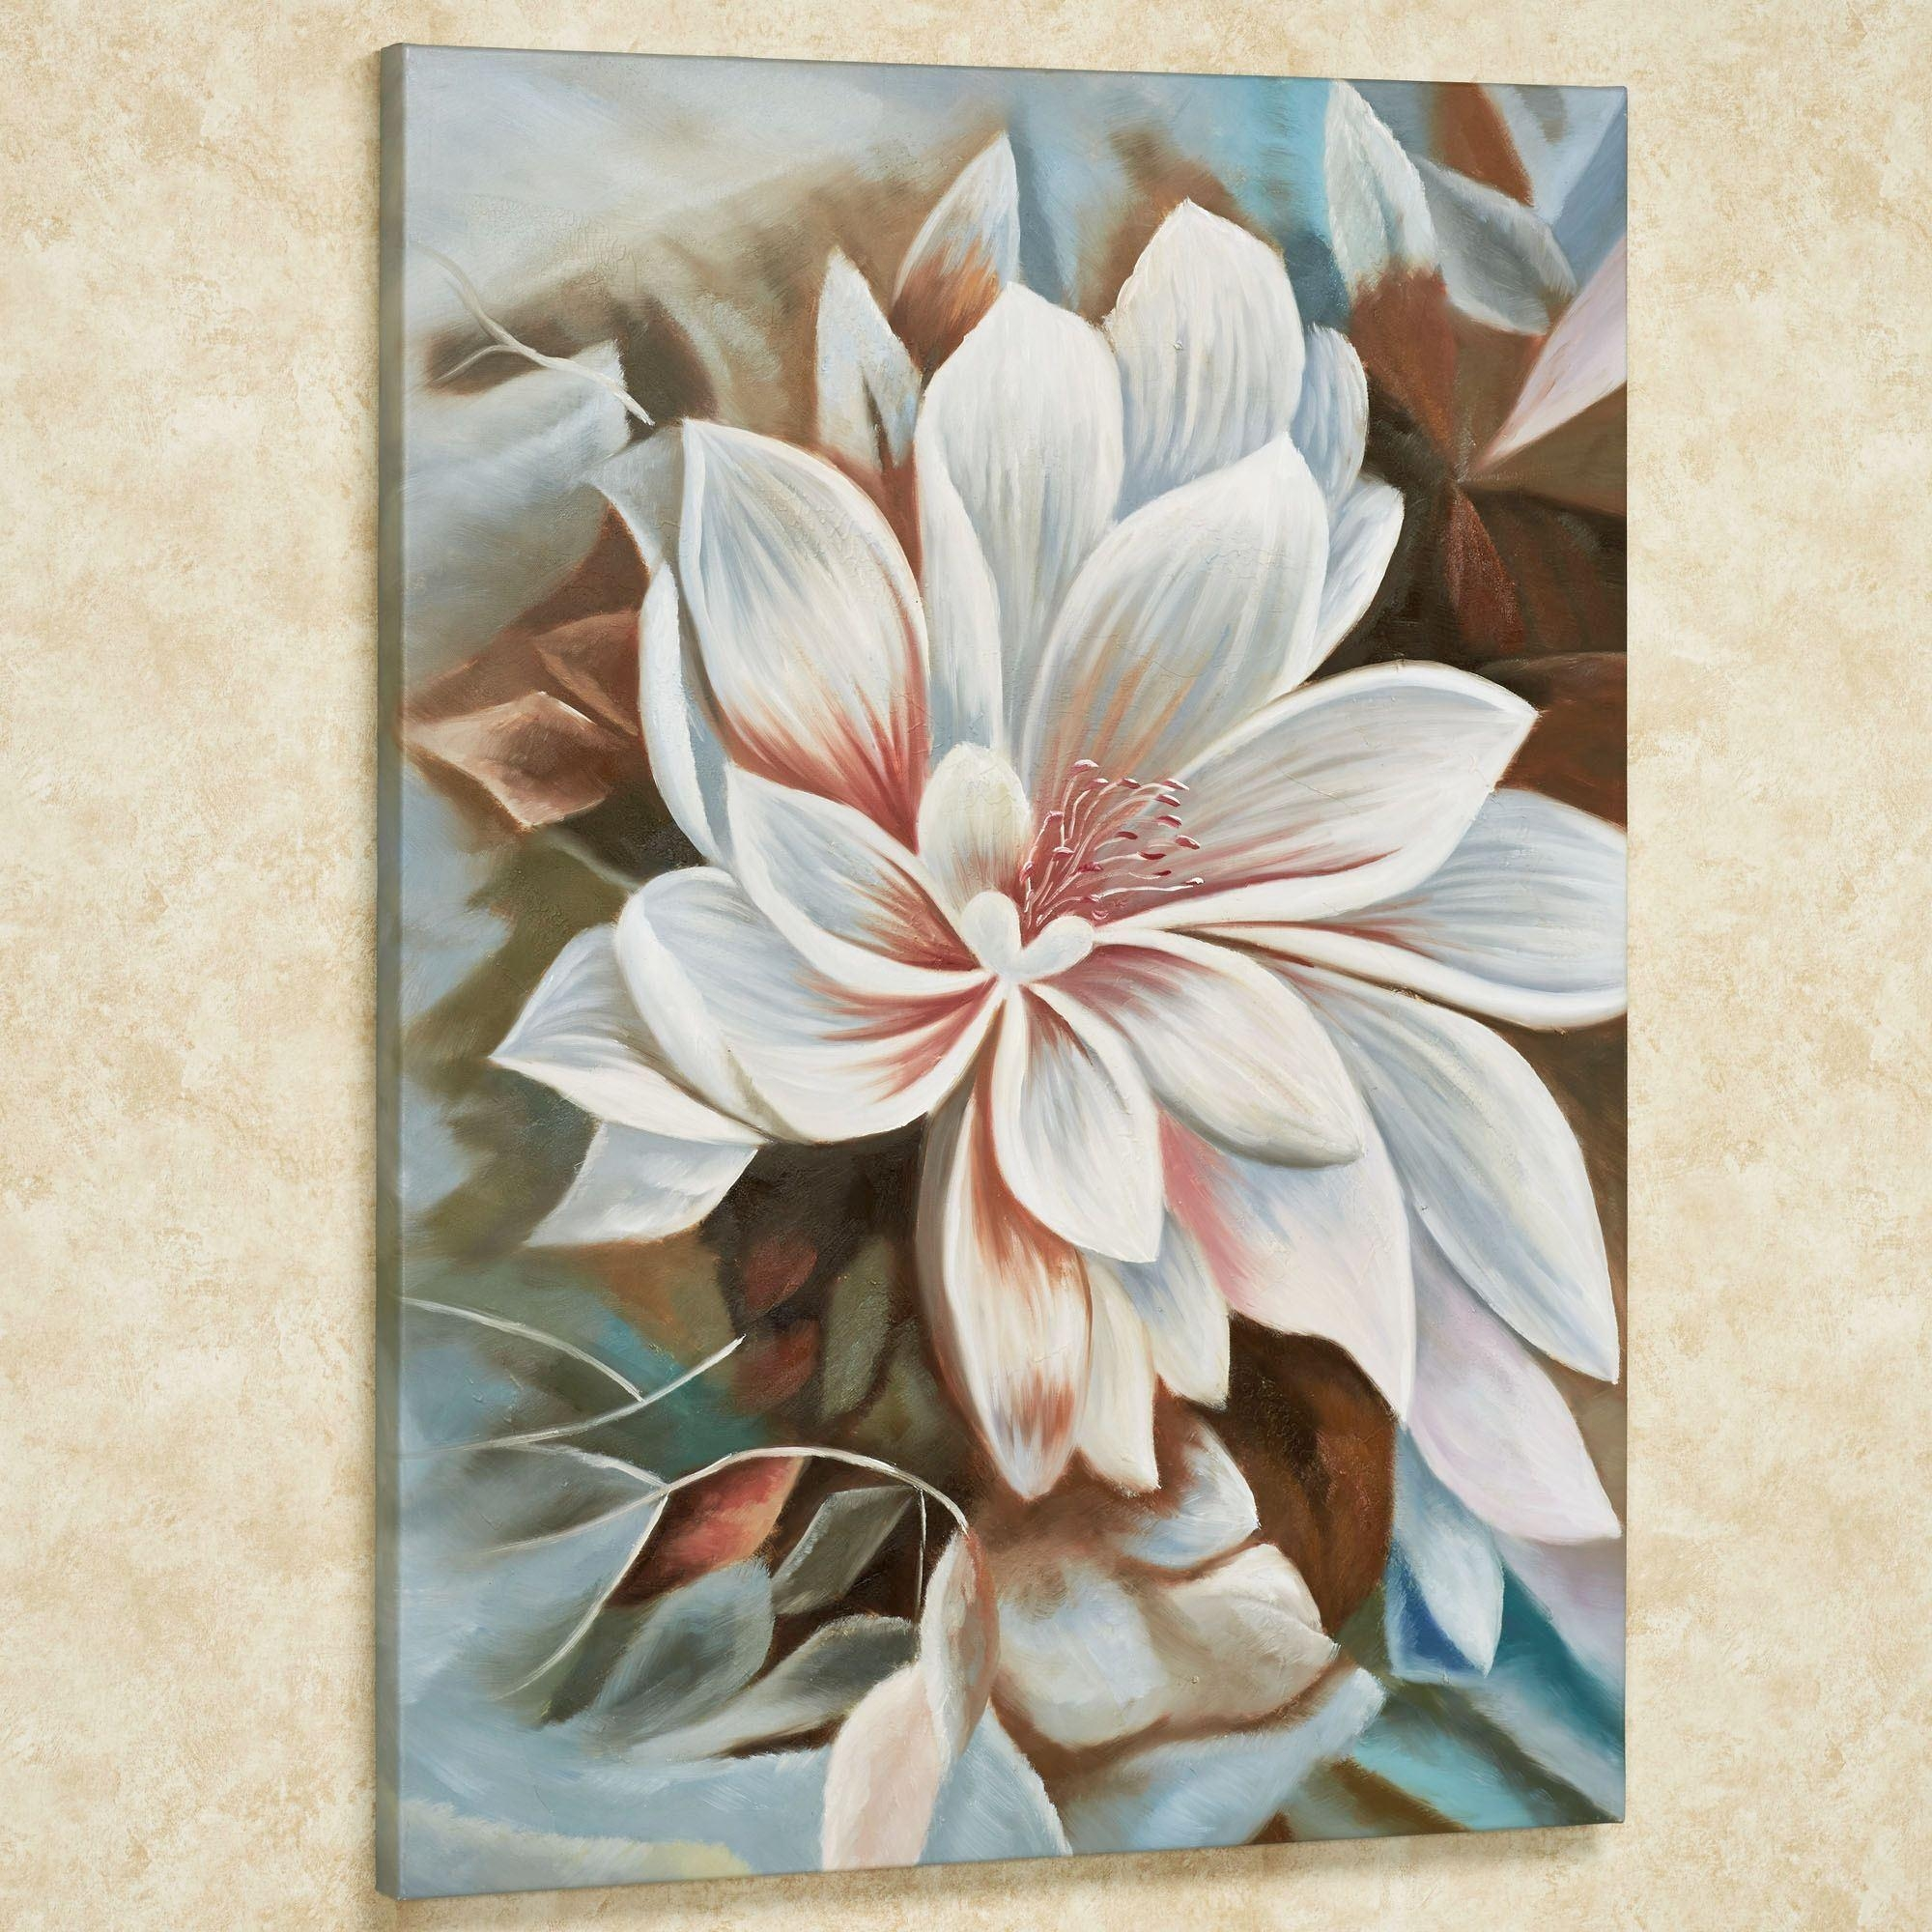 Bursting Beauty Magnolia Floral Canvas Wall Art With Floral Wall Art Canvas (View 8 of 20)